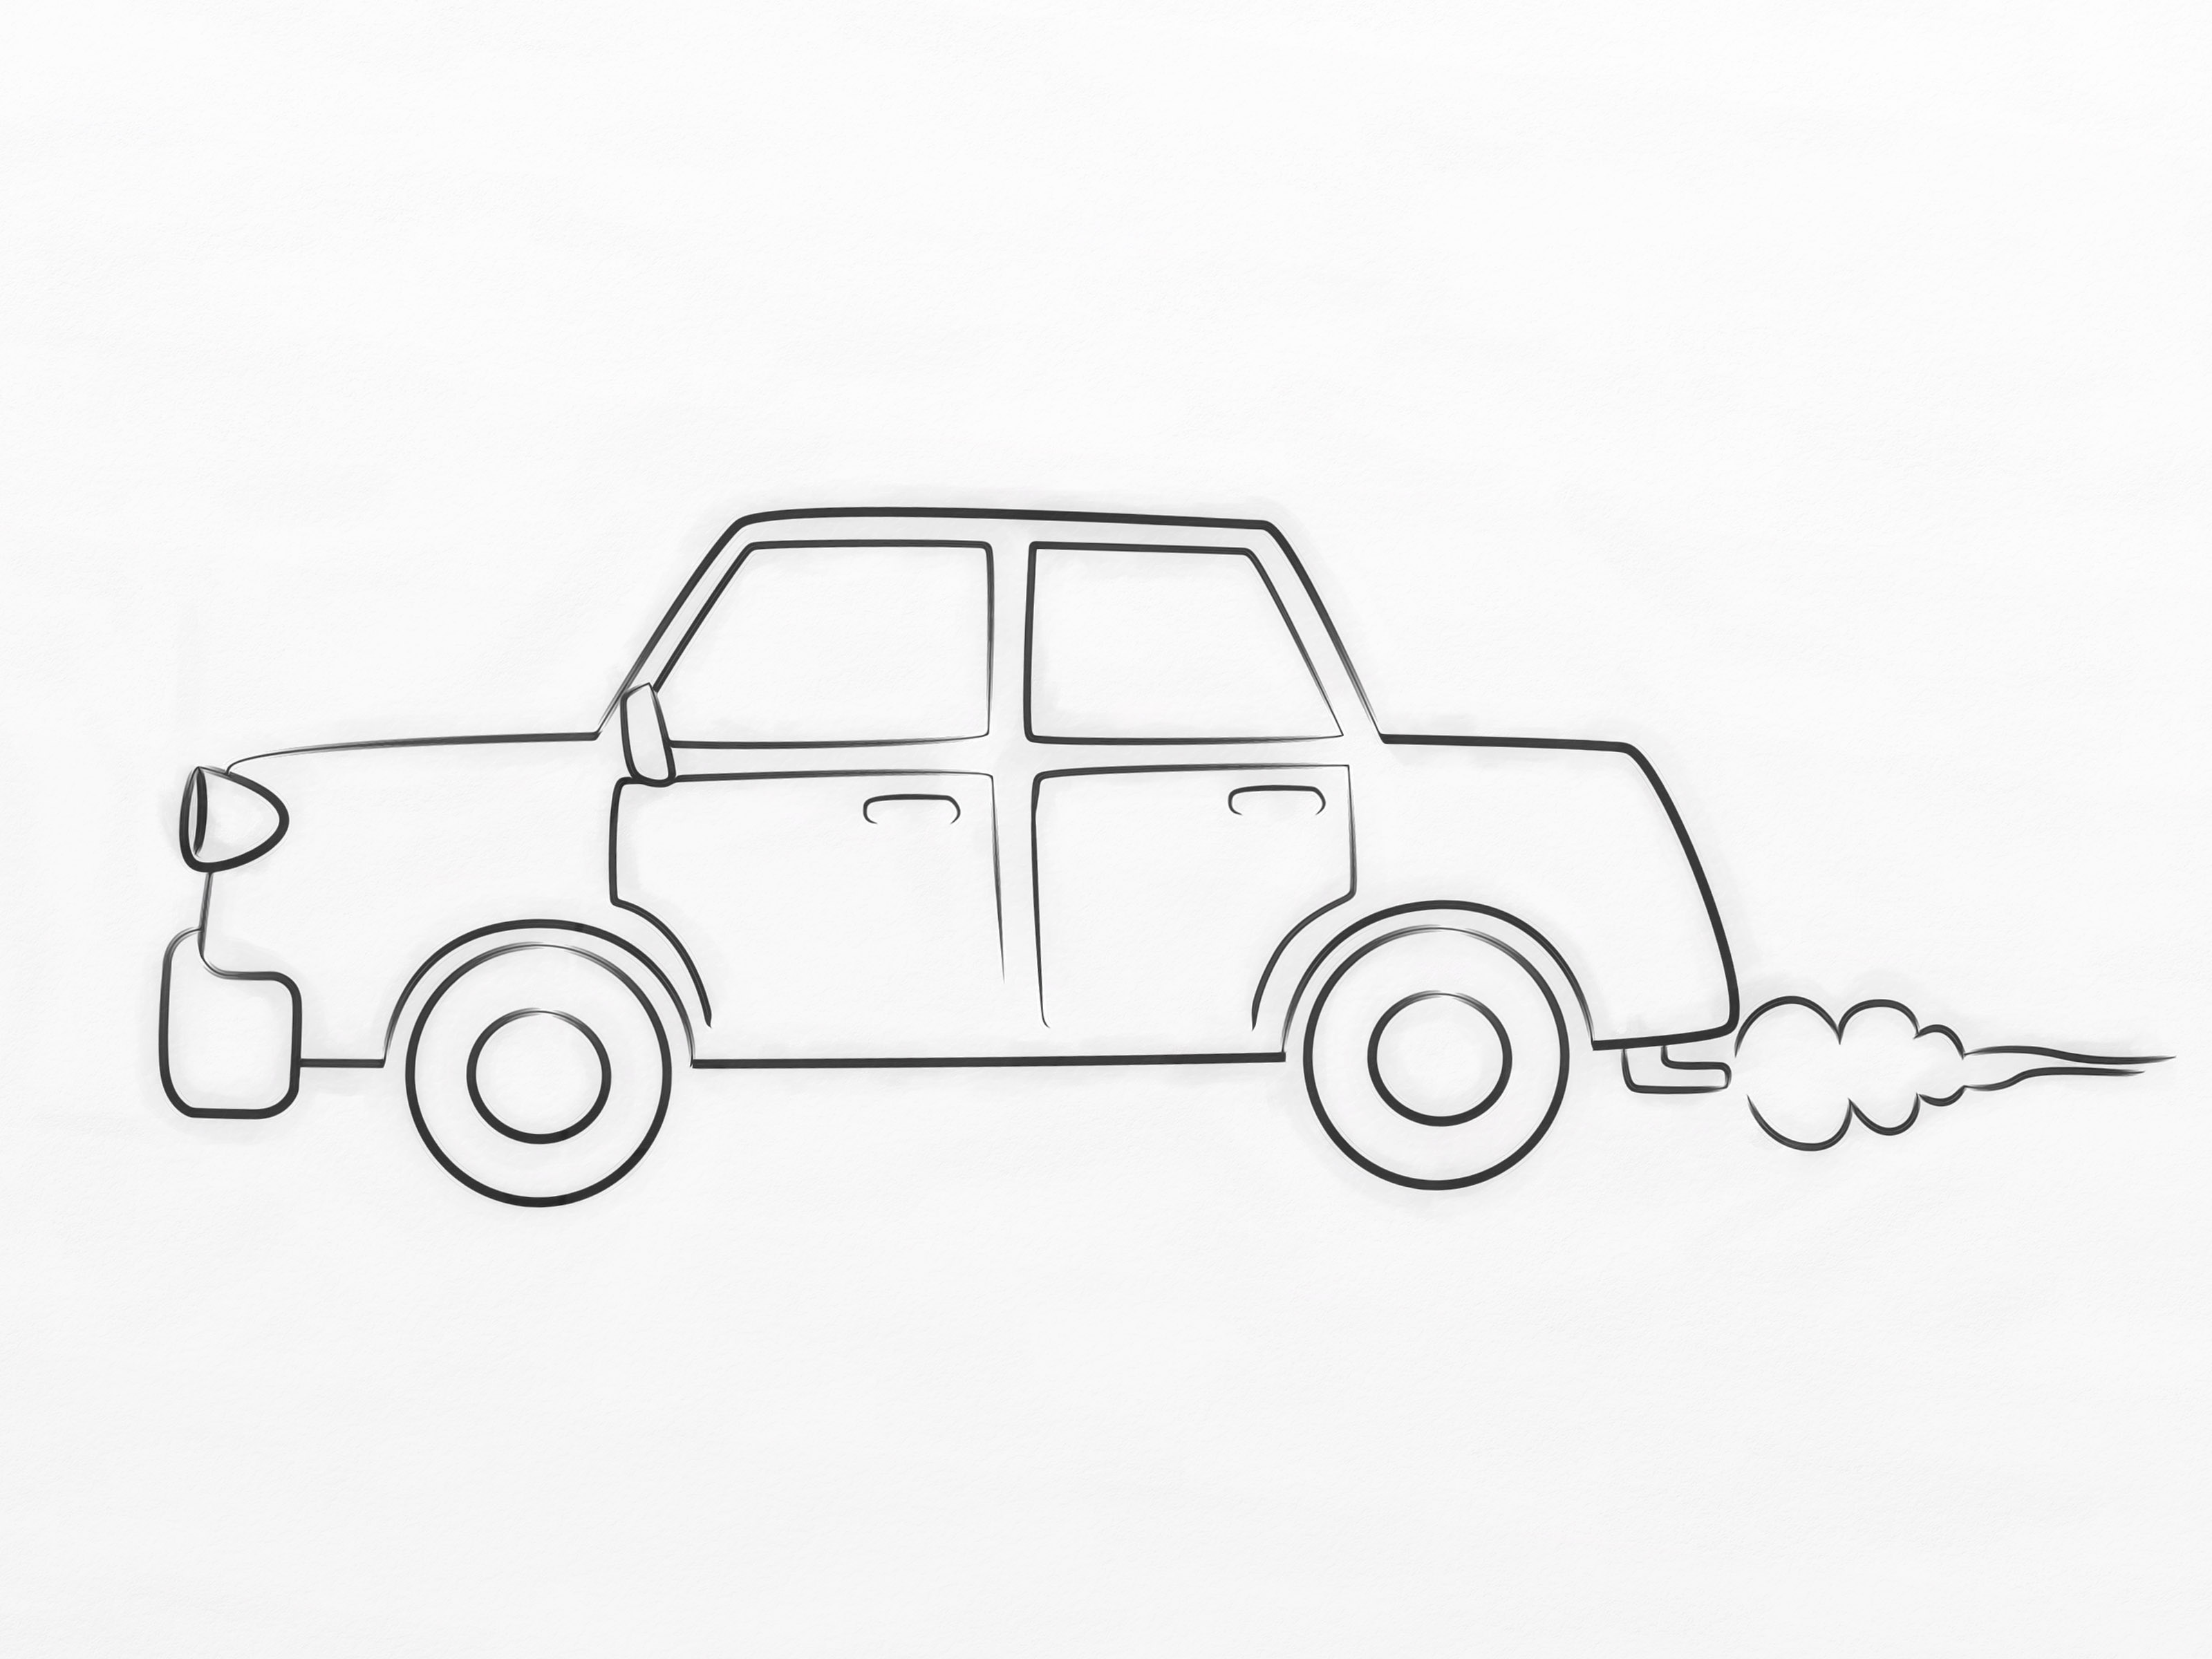 Classic Car Drawing At Getdrawings Com Free For Personal Use